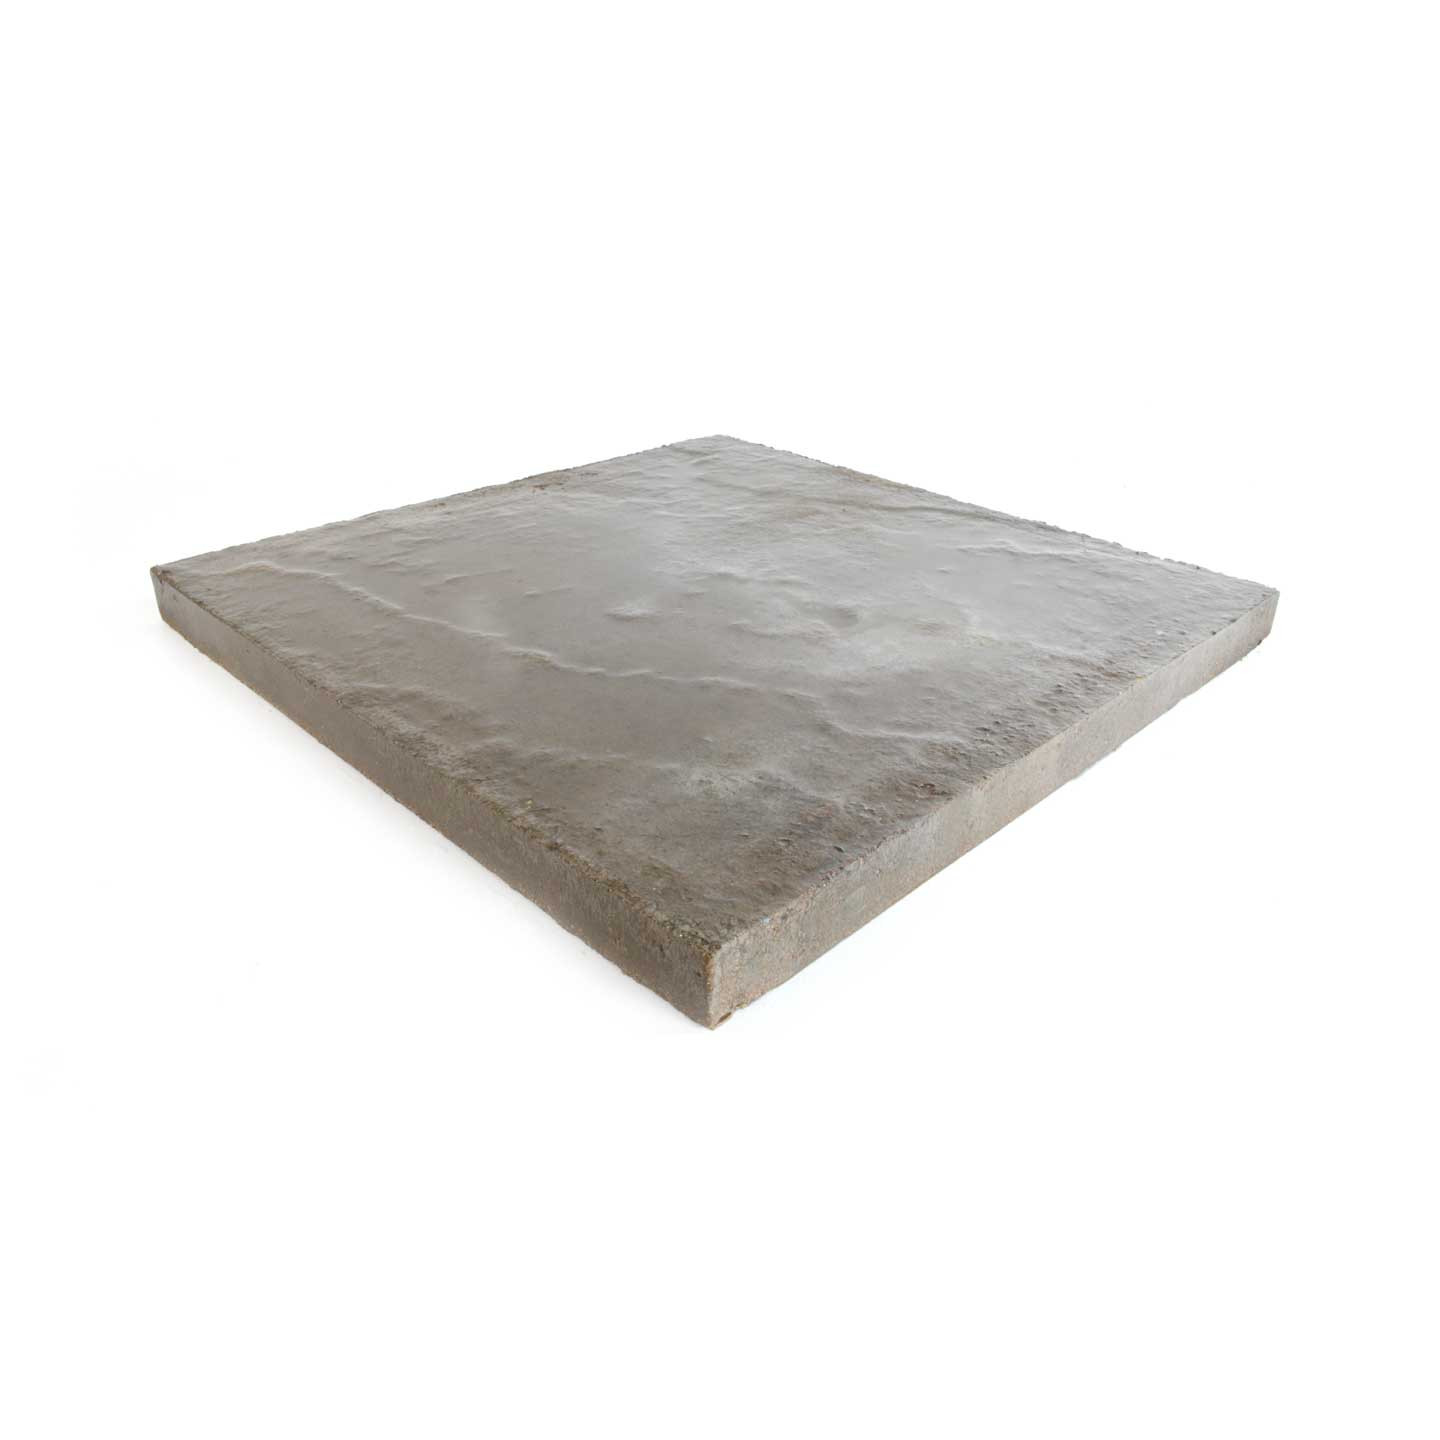 Eaton Milford 600x600x35 Natural Riven Flag Paving CPSM6060N